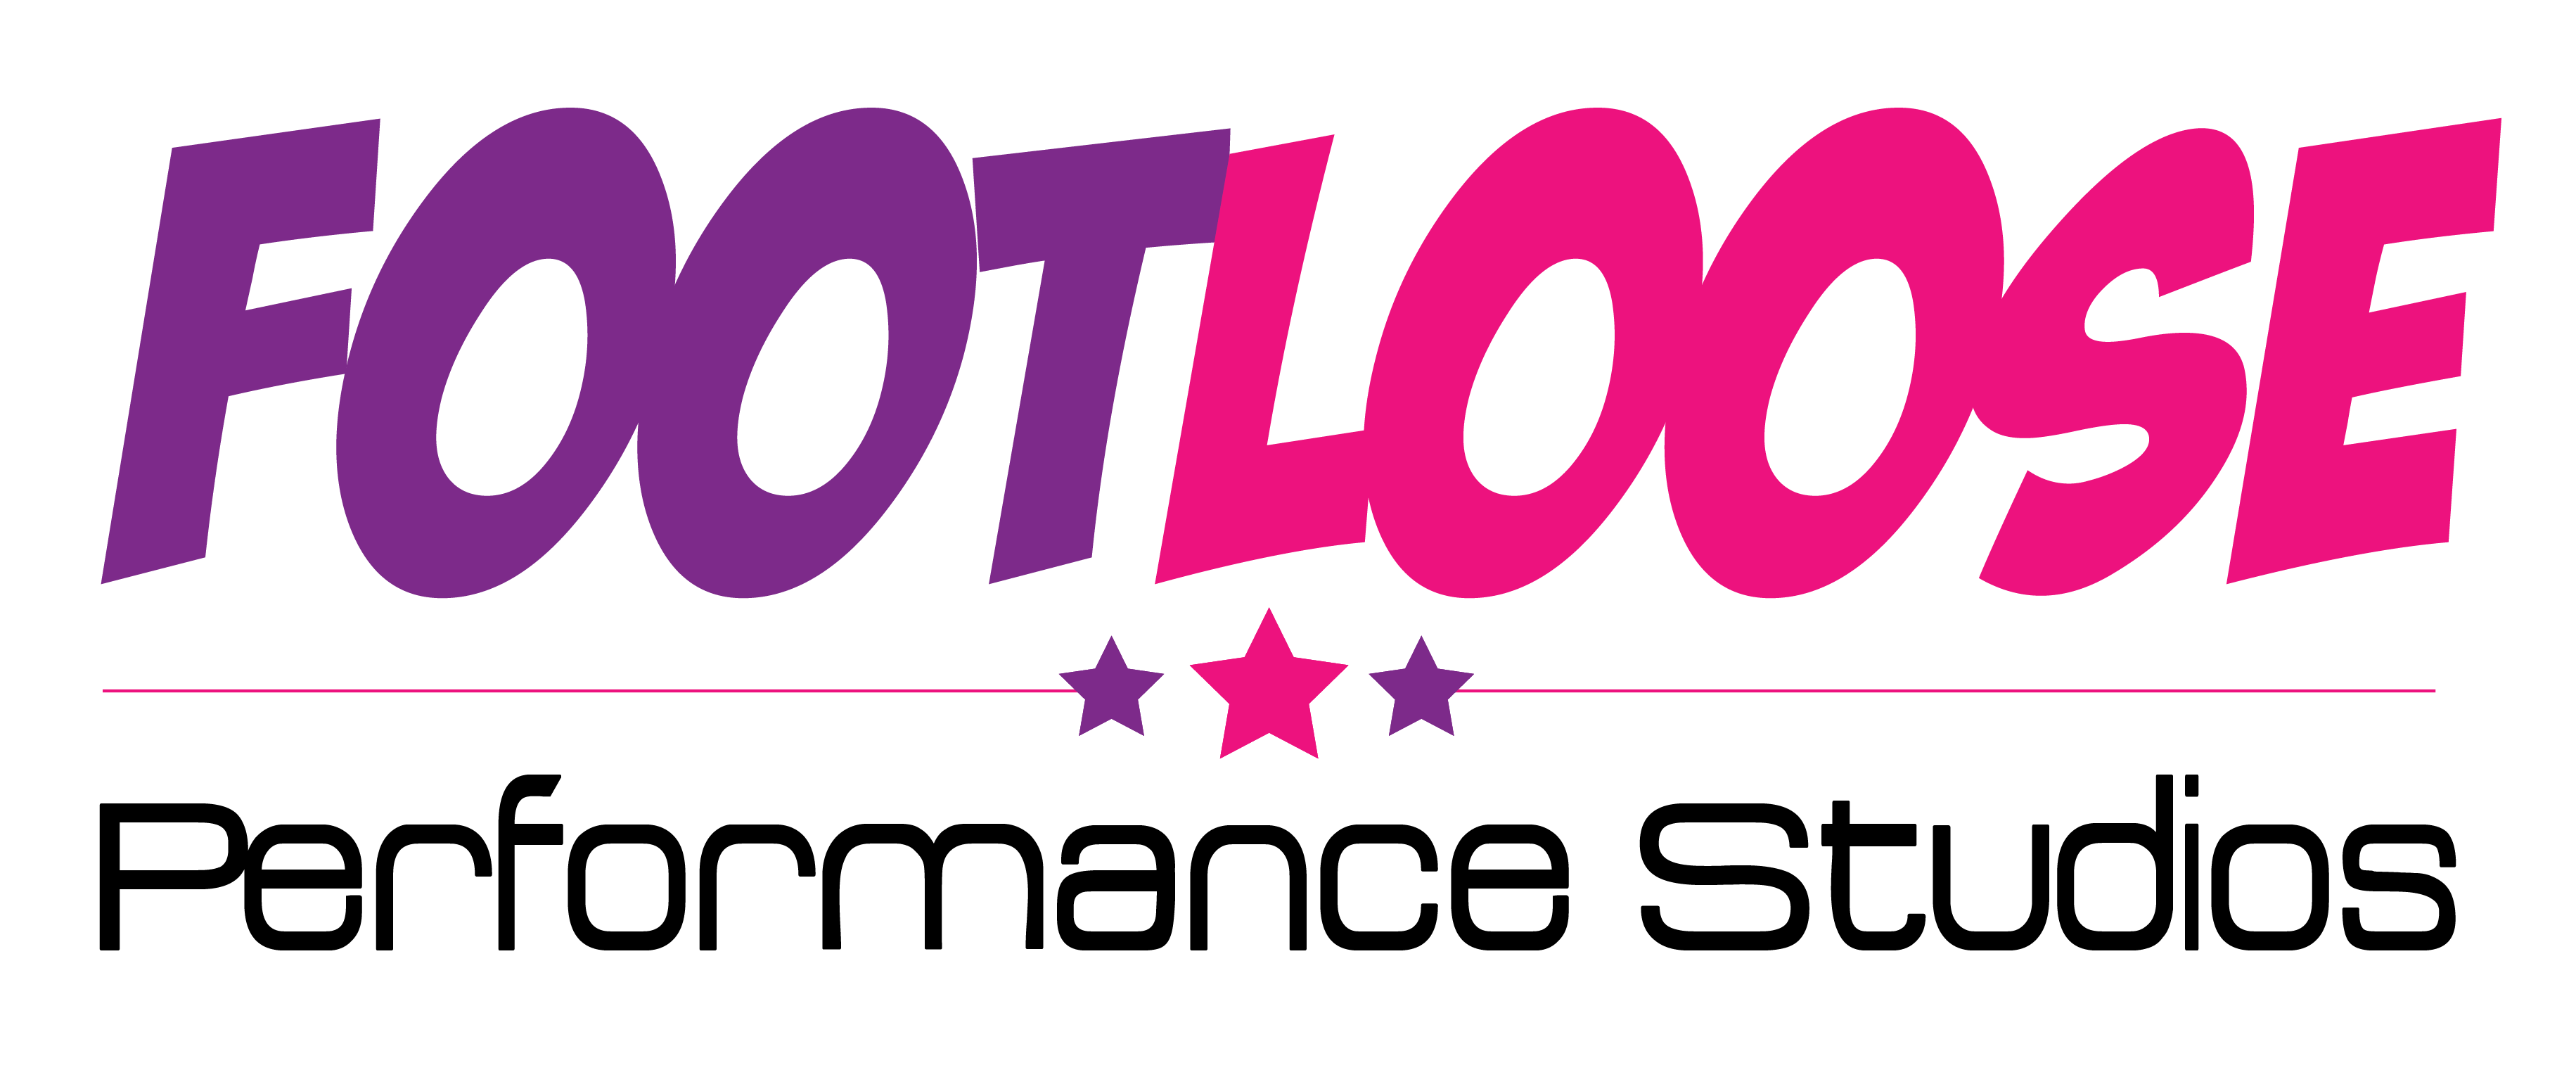 Footloose Performance Studios